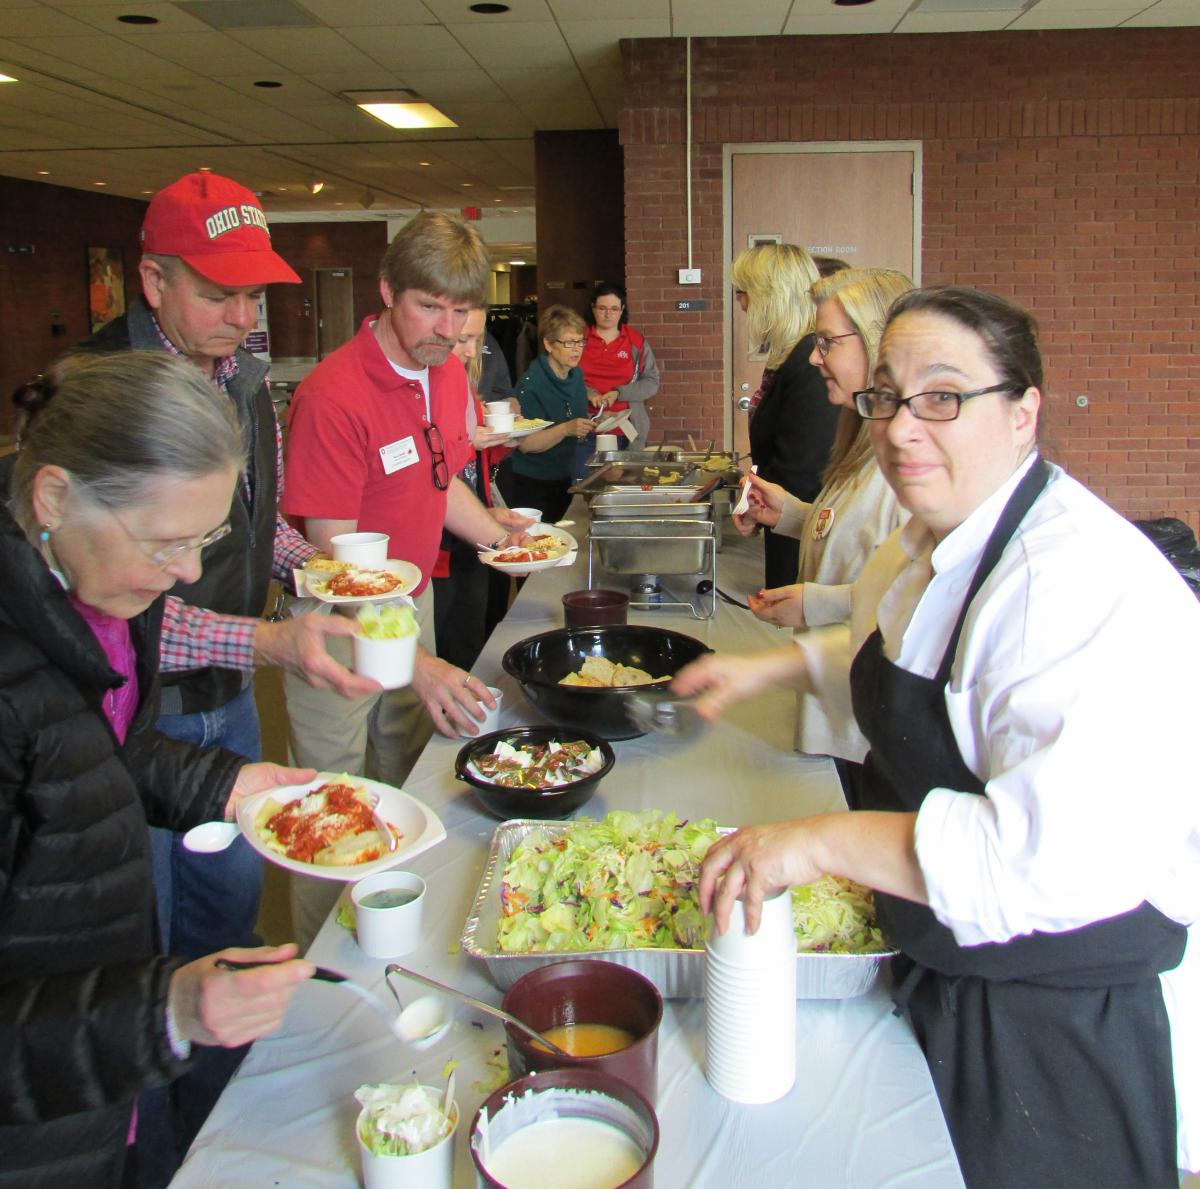 Staff lines up for Italian lunch at the Wooster event